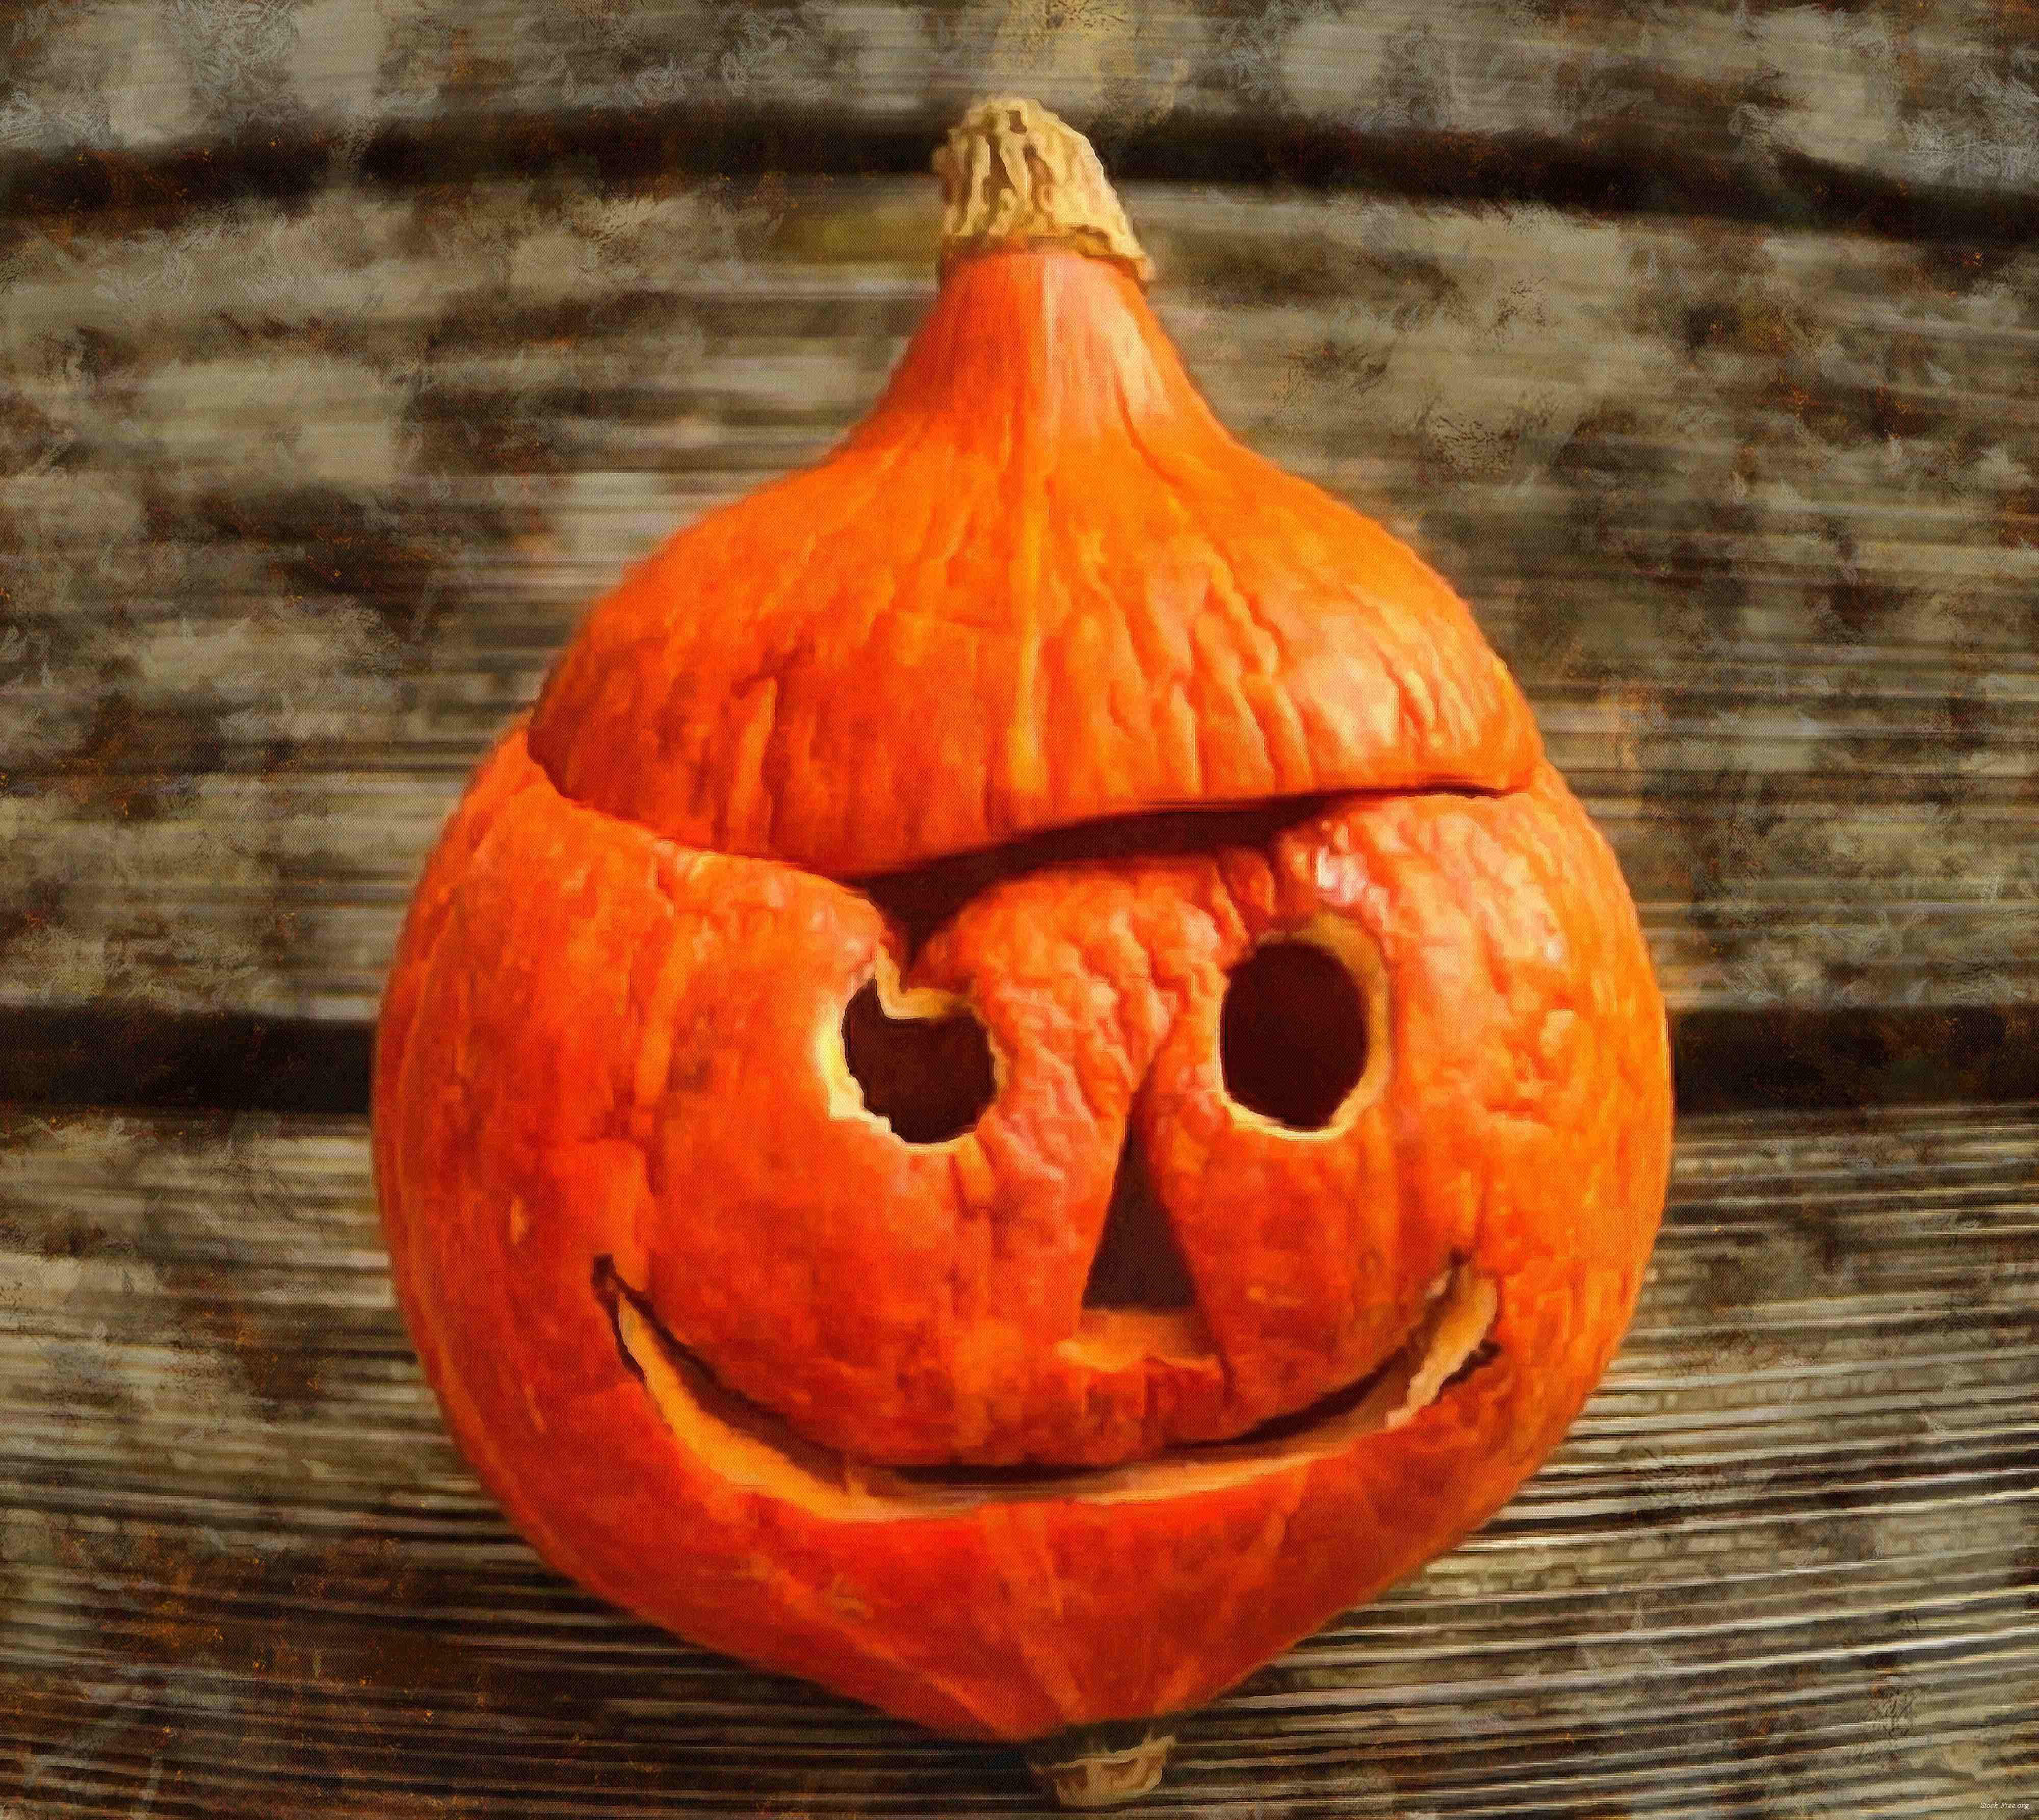 pumpkin, holiday, celebration, fun, carnival, smile, face, Halloween, All Saints' Day - halloween, free image, free picture, stock free images, public domain images, download free photos, free stock photos, free graphic